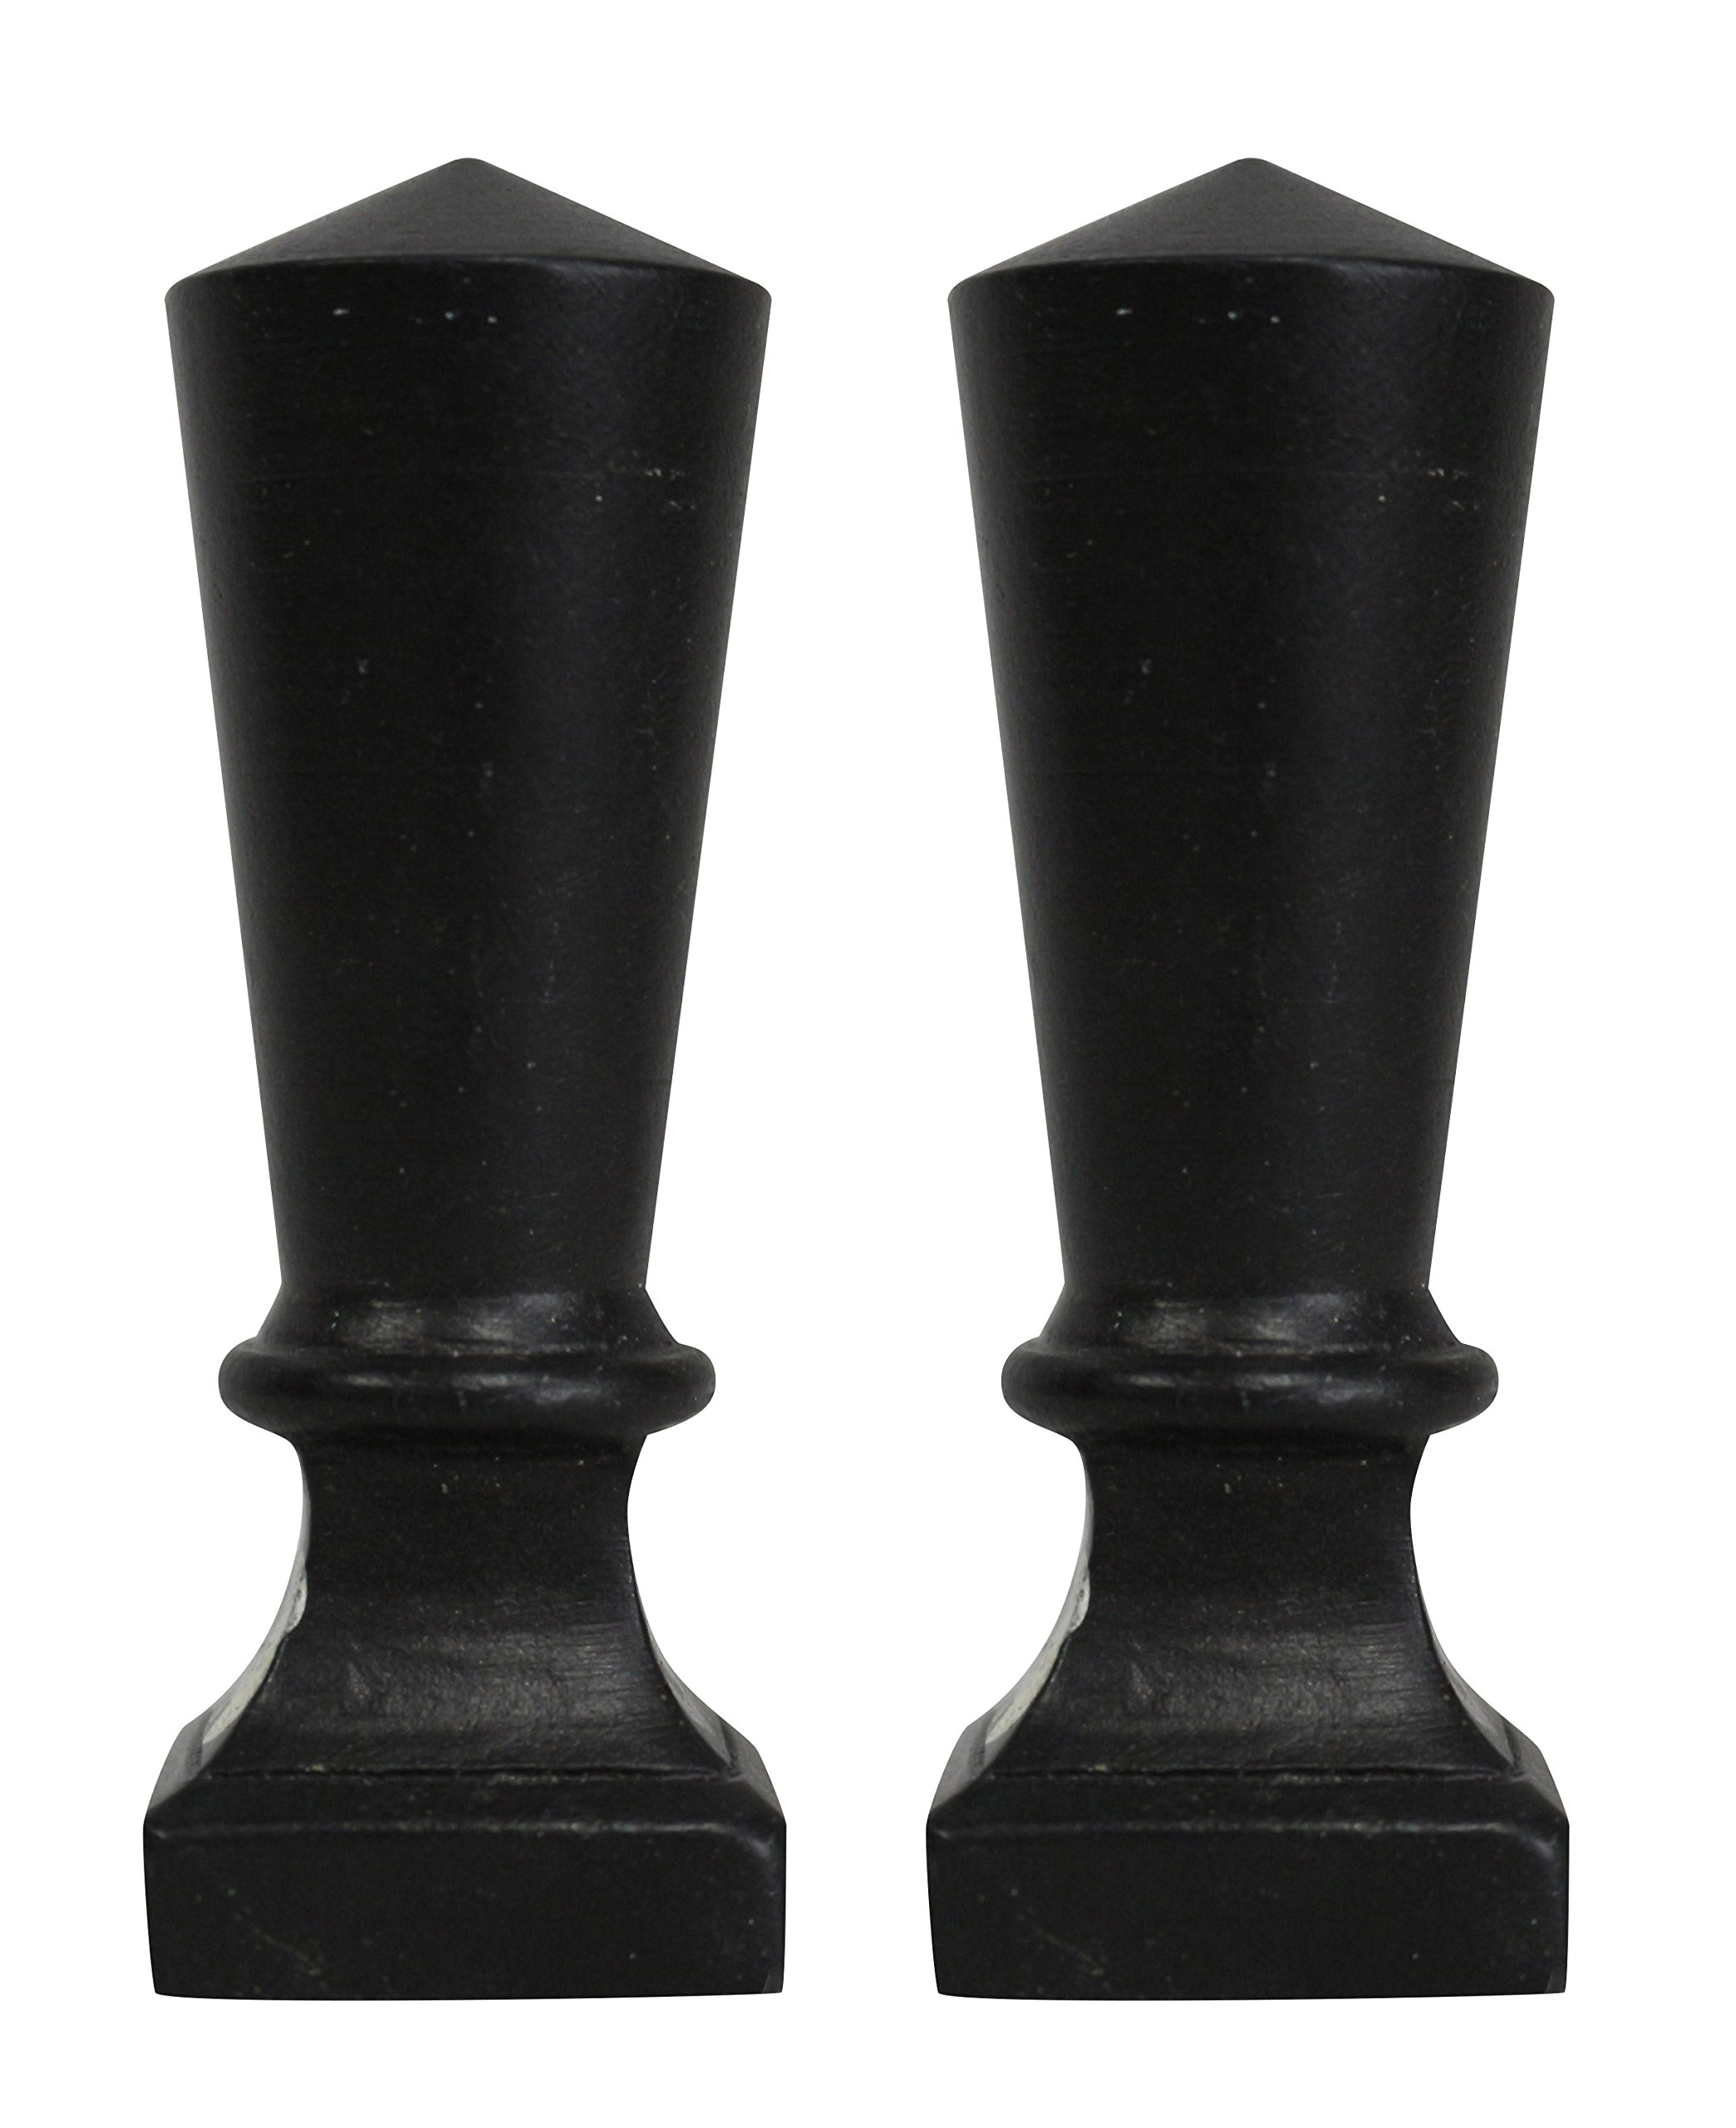 Urbanest Set of 2 Olivet Lamp Finial, 2 1/2-inch Tall, Oil-rubbed Bronze